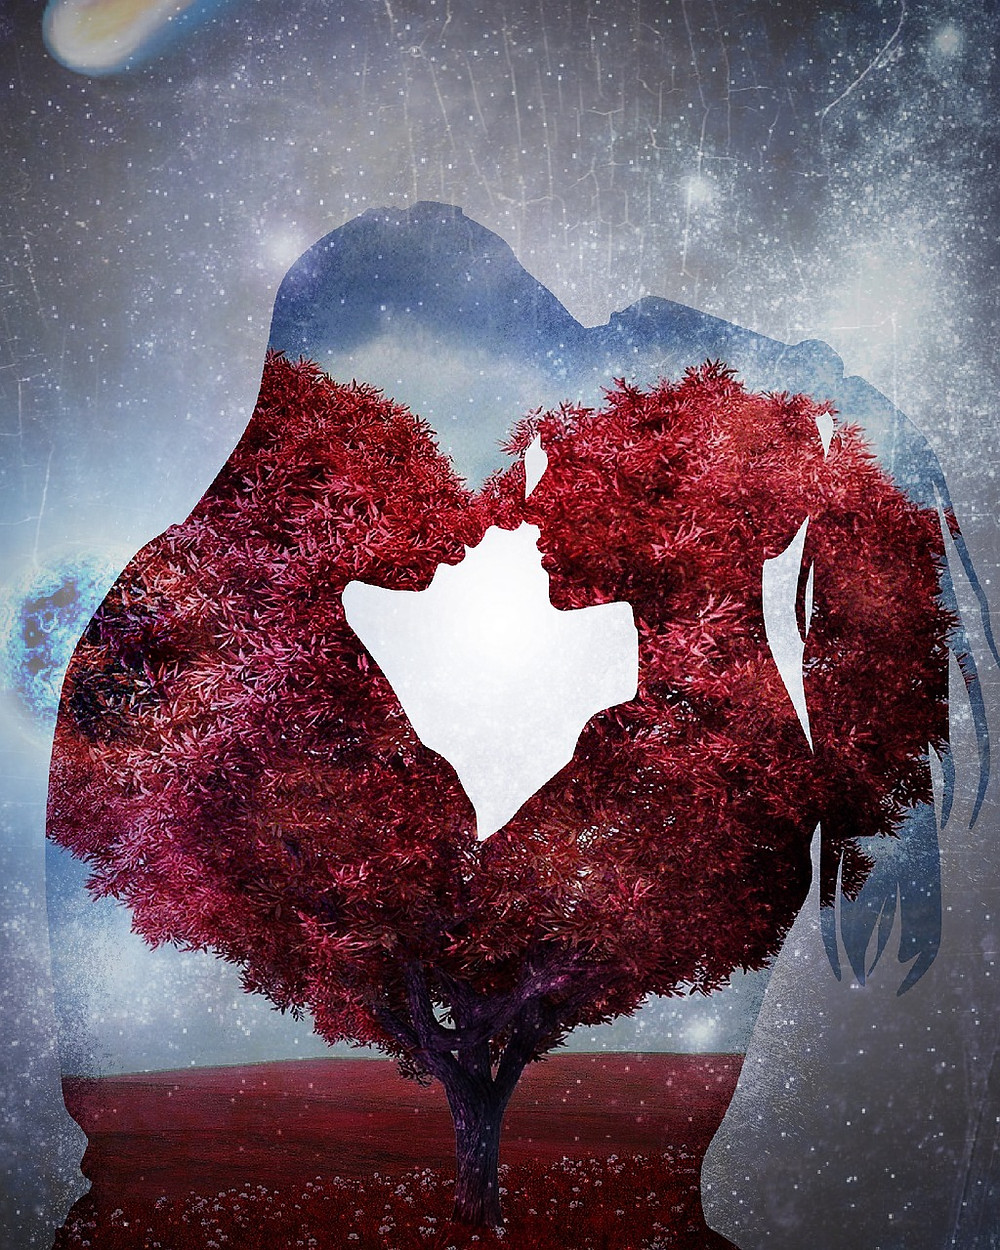 Man and women silhouetted against a ruby-leaved tree